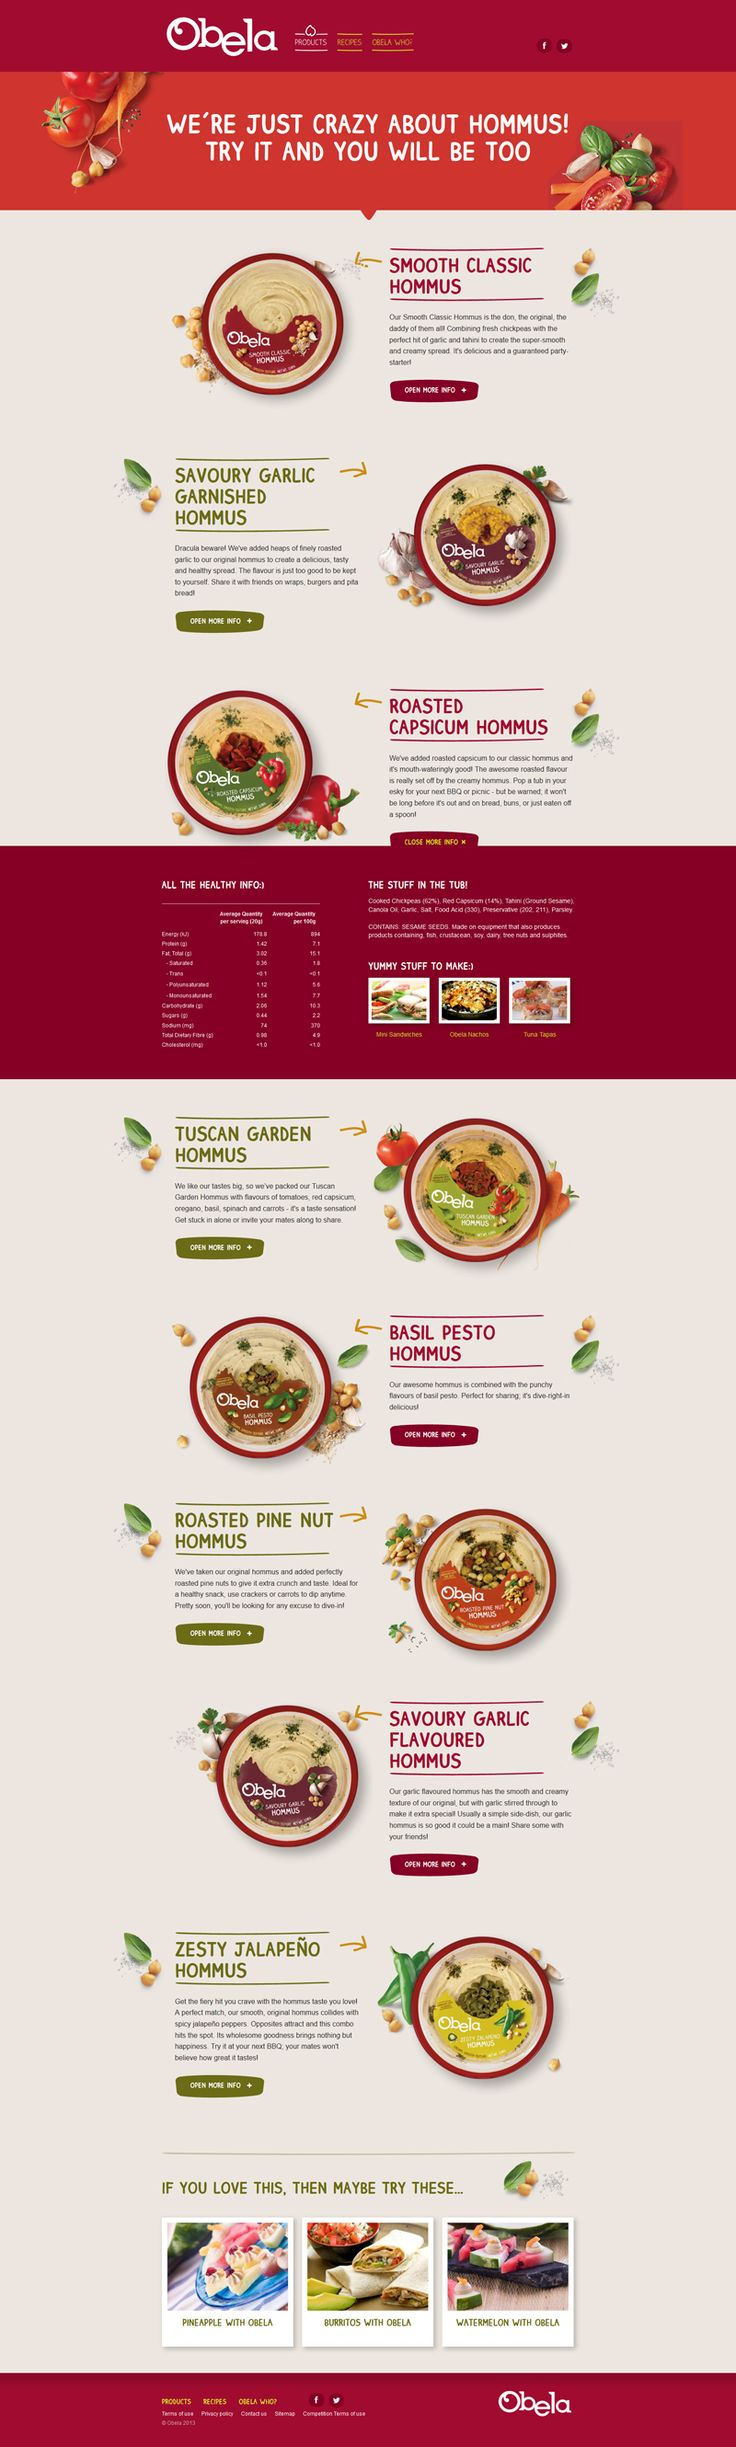 Unique Web Design, Obela @juliemoynat | #webdesign #it #web #design #layout #userinterface #website #webdesign repinned by www.BlickeDeeler.de | Visit our website www.blickedeeler.de/leistungen/webdesign